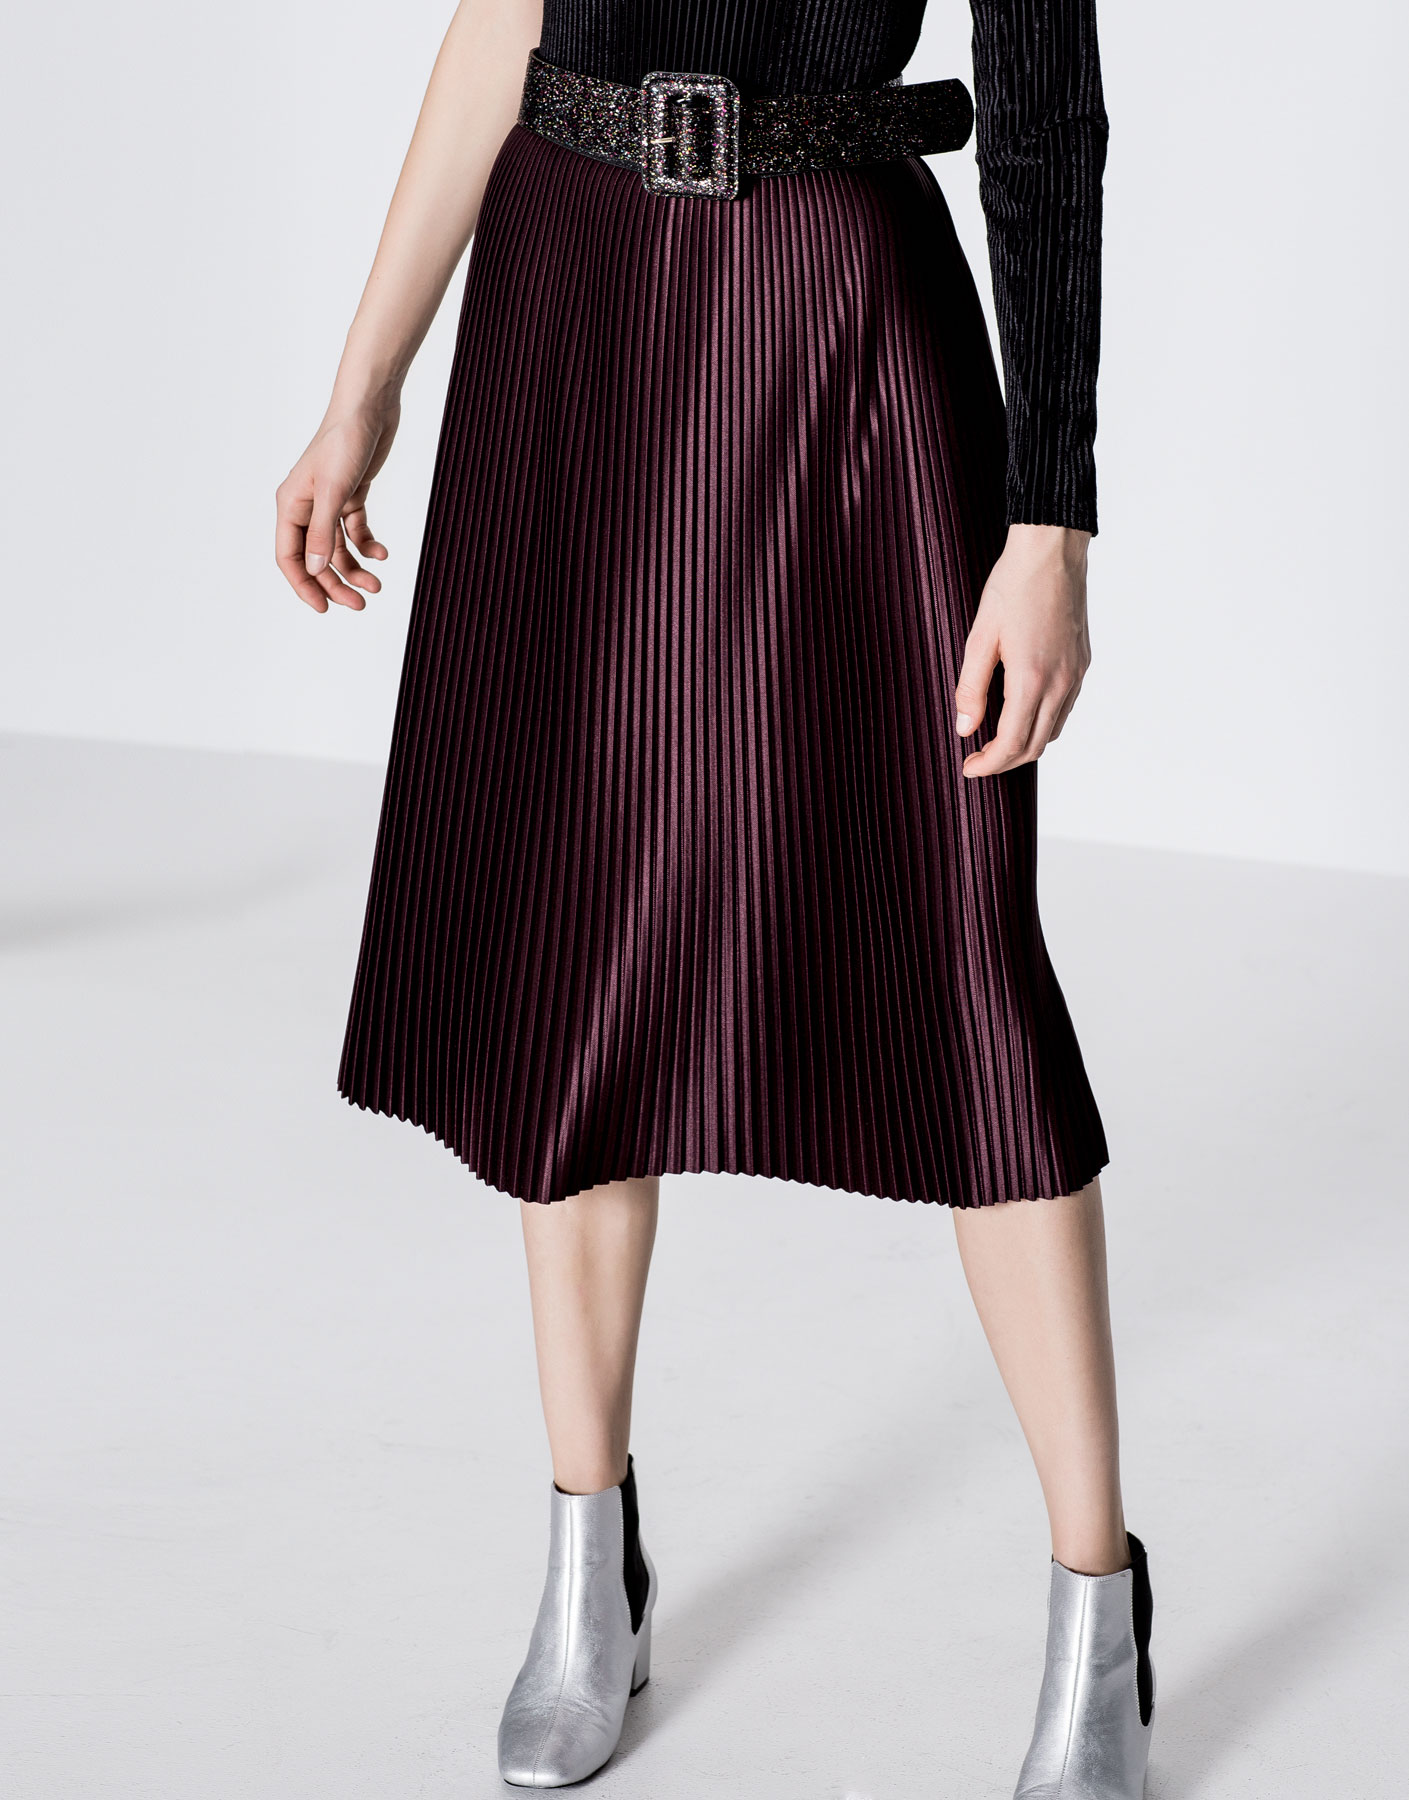 Finely pleated glossy skirt